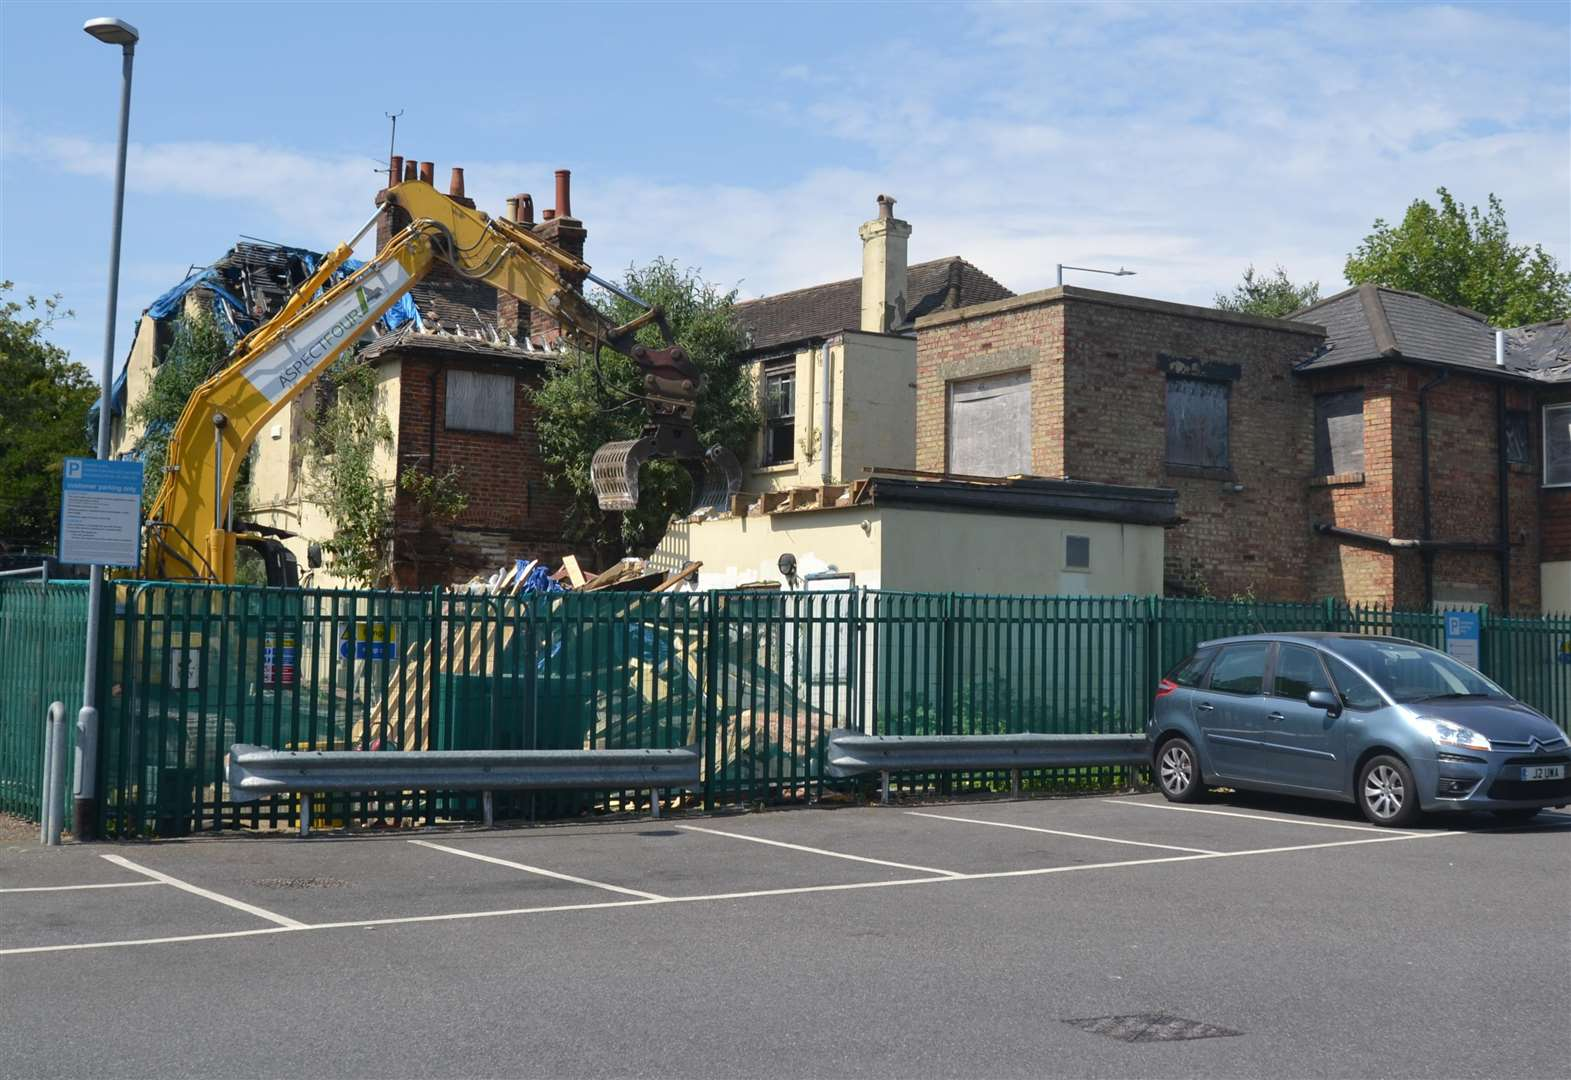 Demolition finally starts at pub